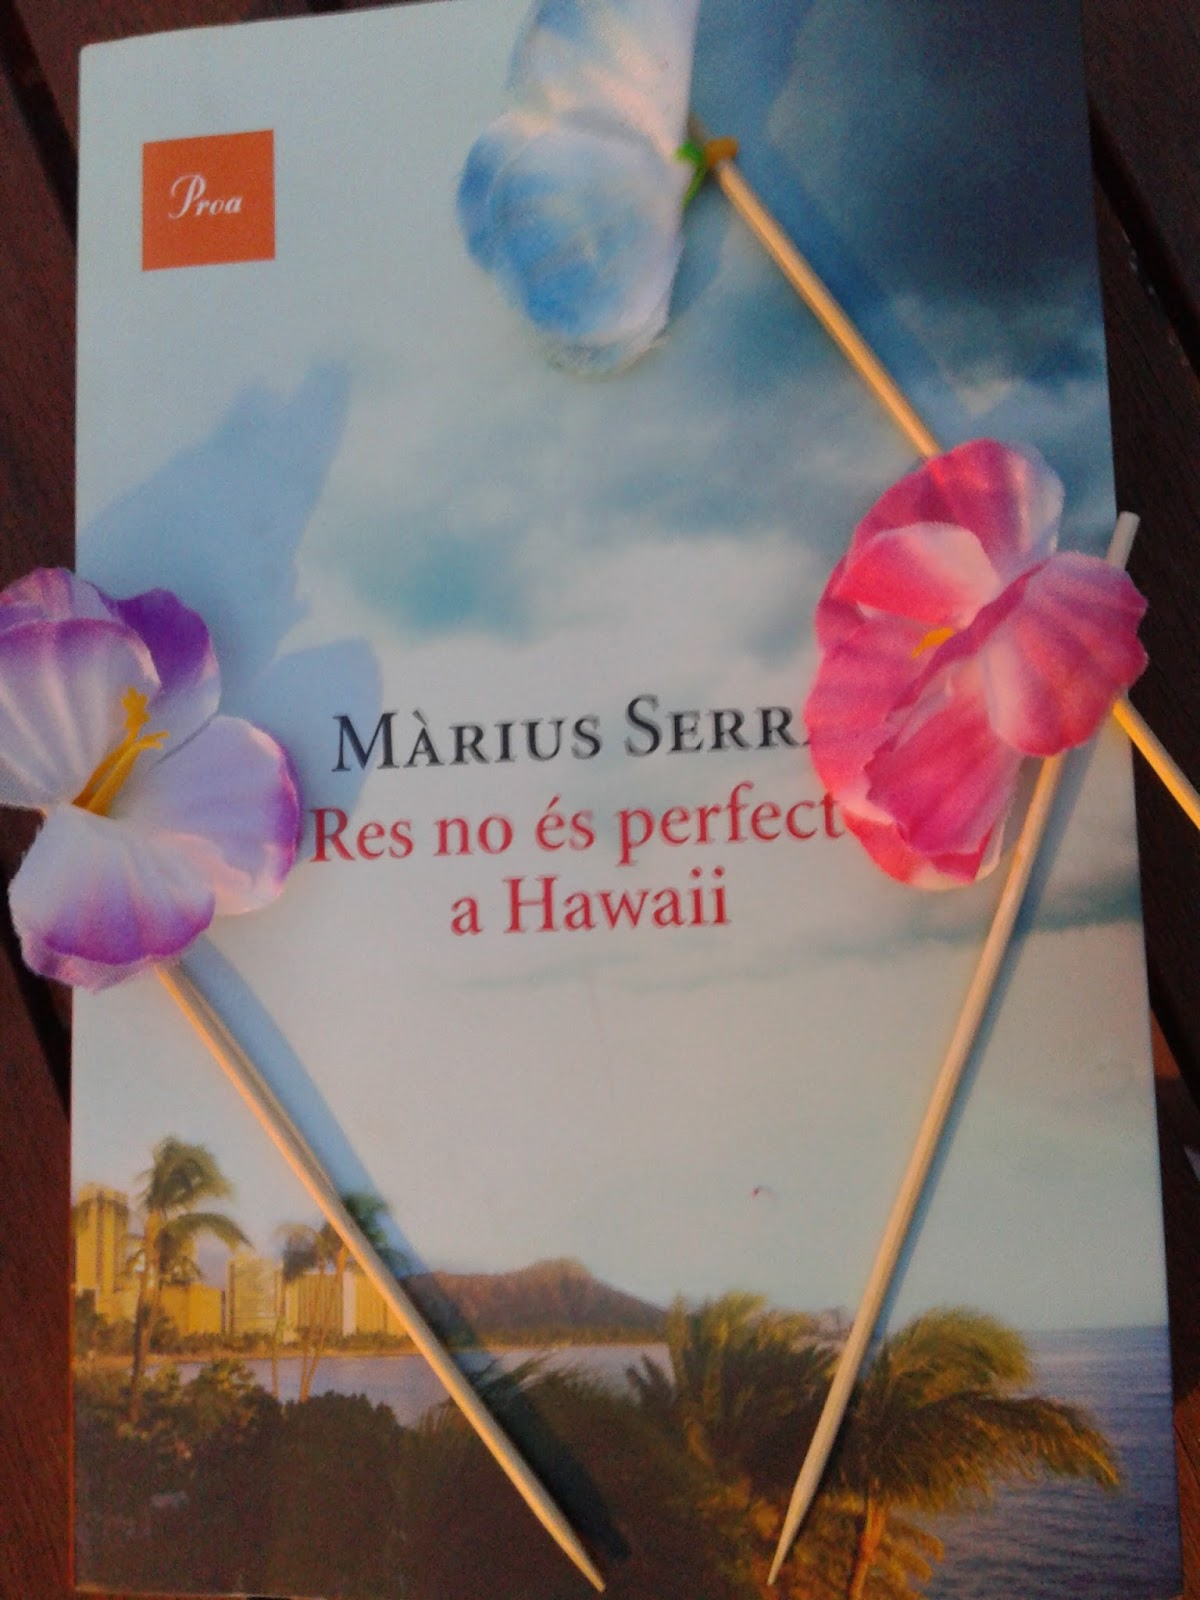 Res no és perfecte a Hawaii